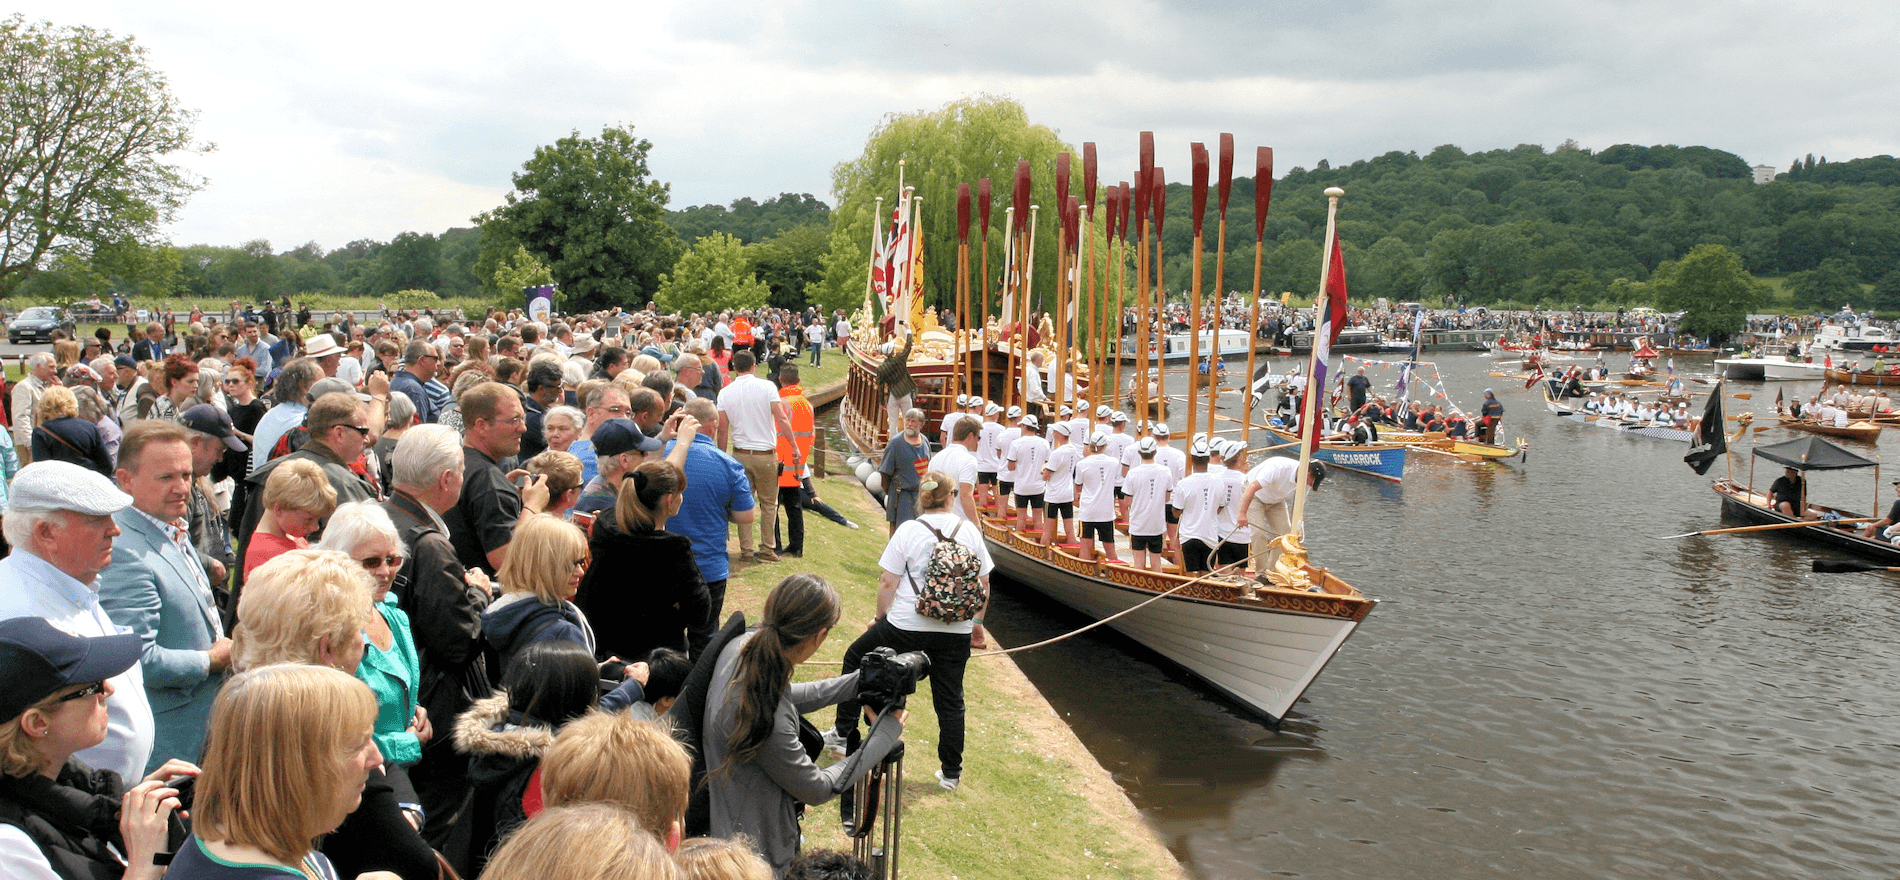 The crowds at Runnymede for Magna Carta 800th anniversary in 2015